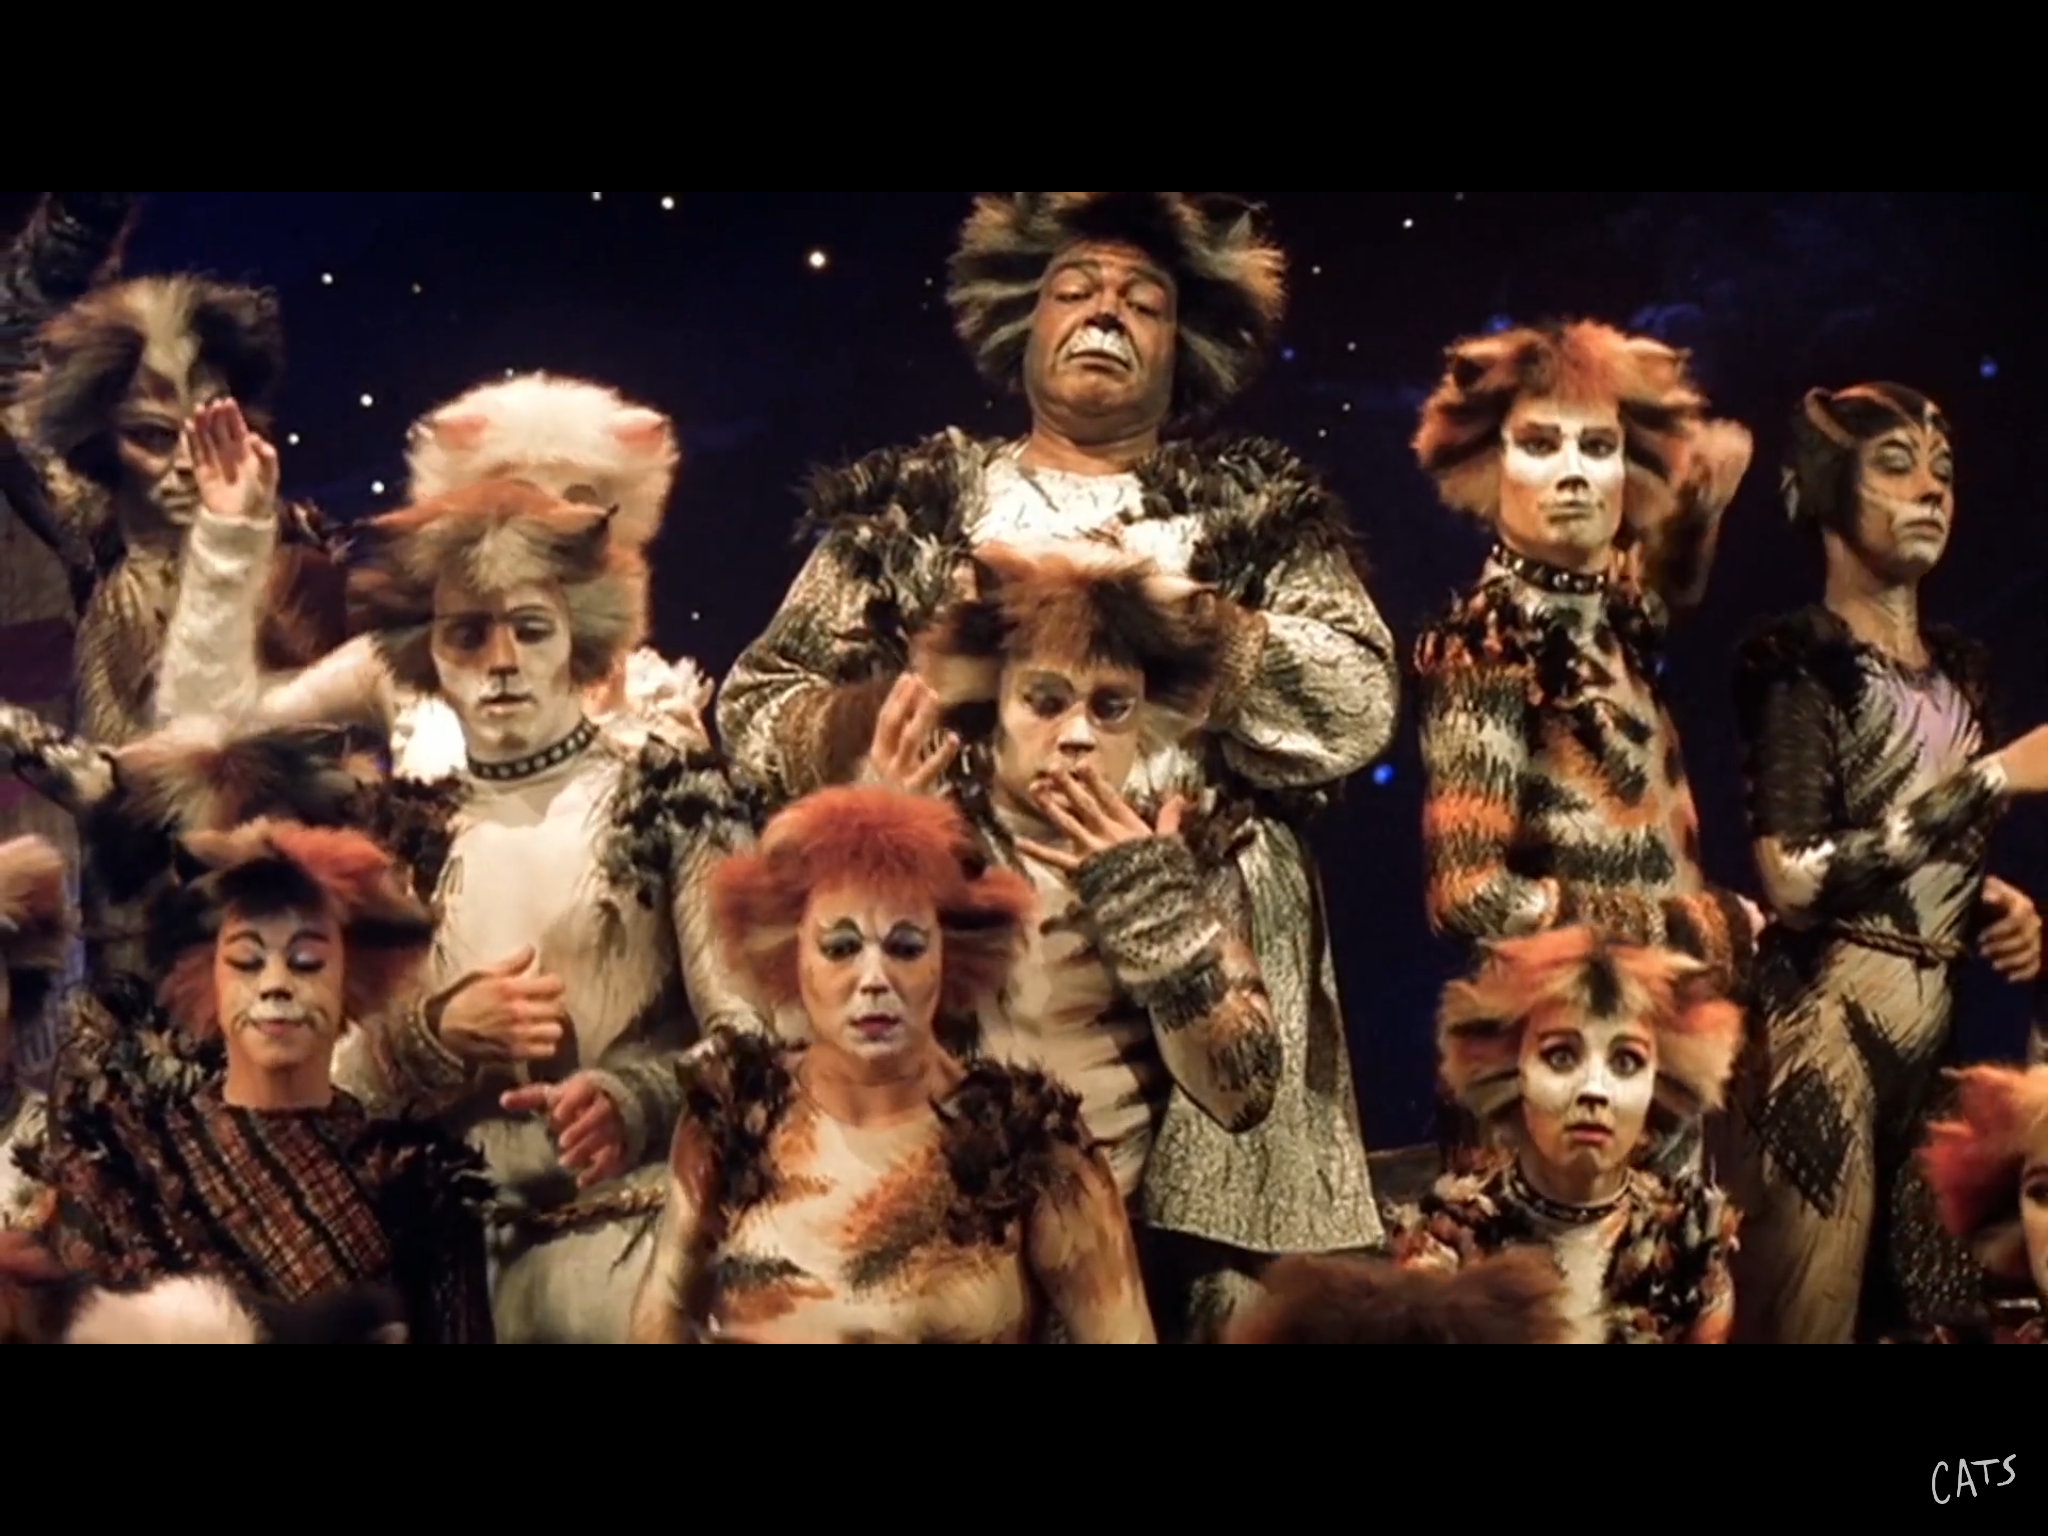 Pin by Martes Pennanti on Cats The Musical Jellicle